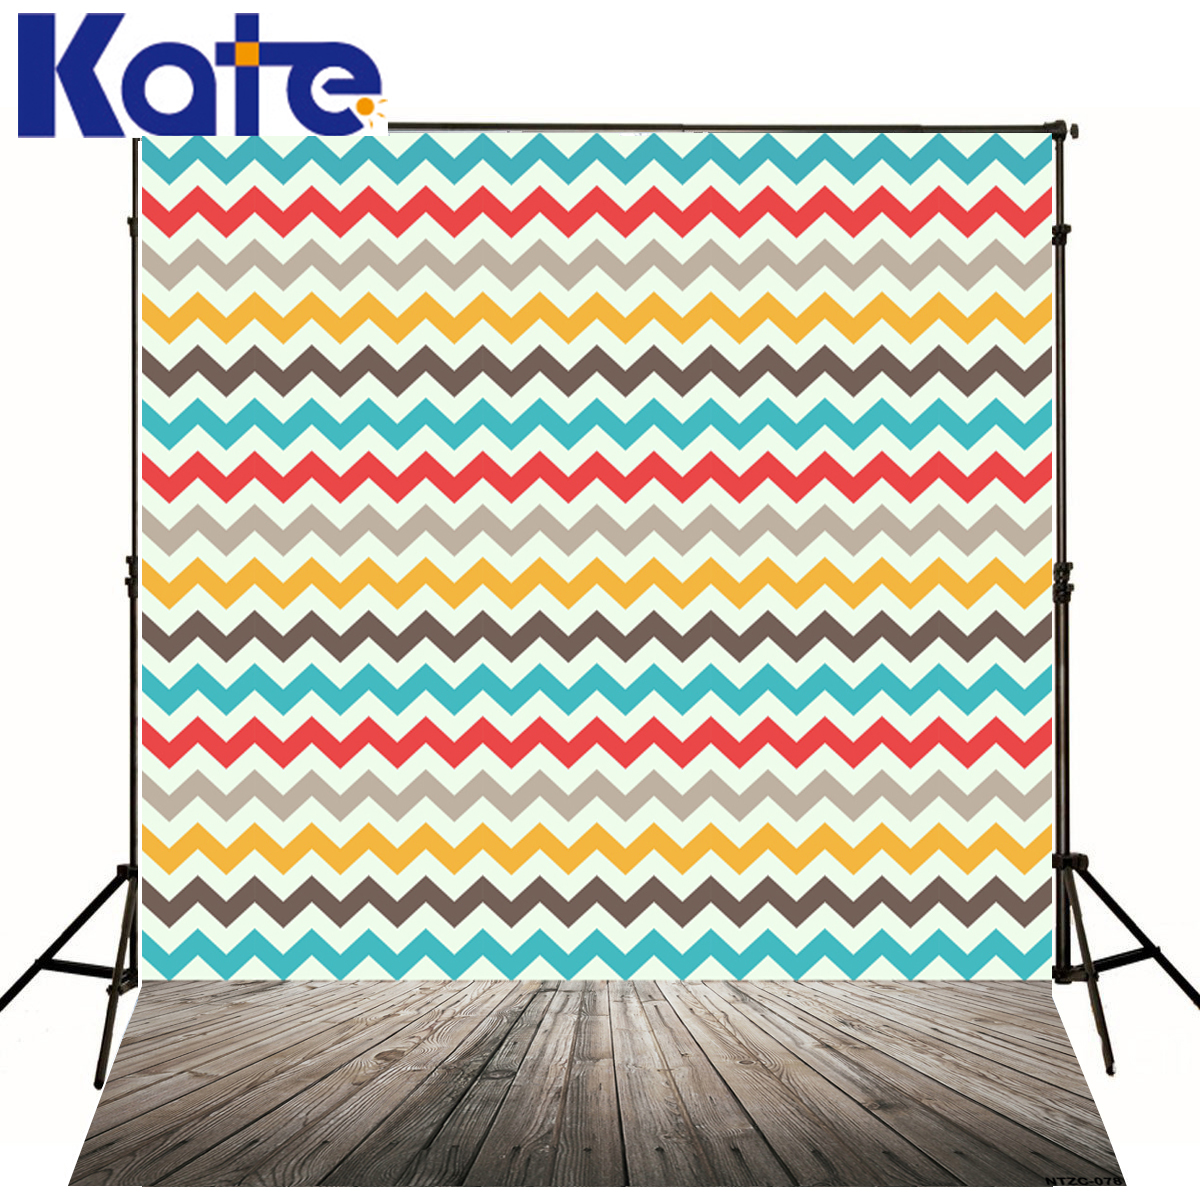 Kate Colored Wavy Stripes Backdrops Photography Wood Floor Digital Print Photographic Background For Photo Studio J01681<br>